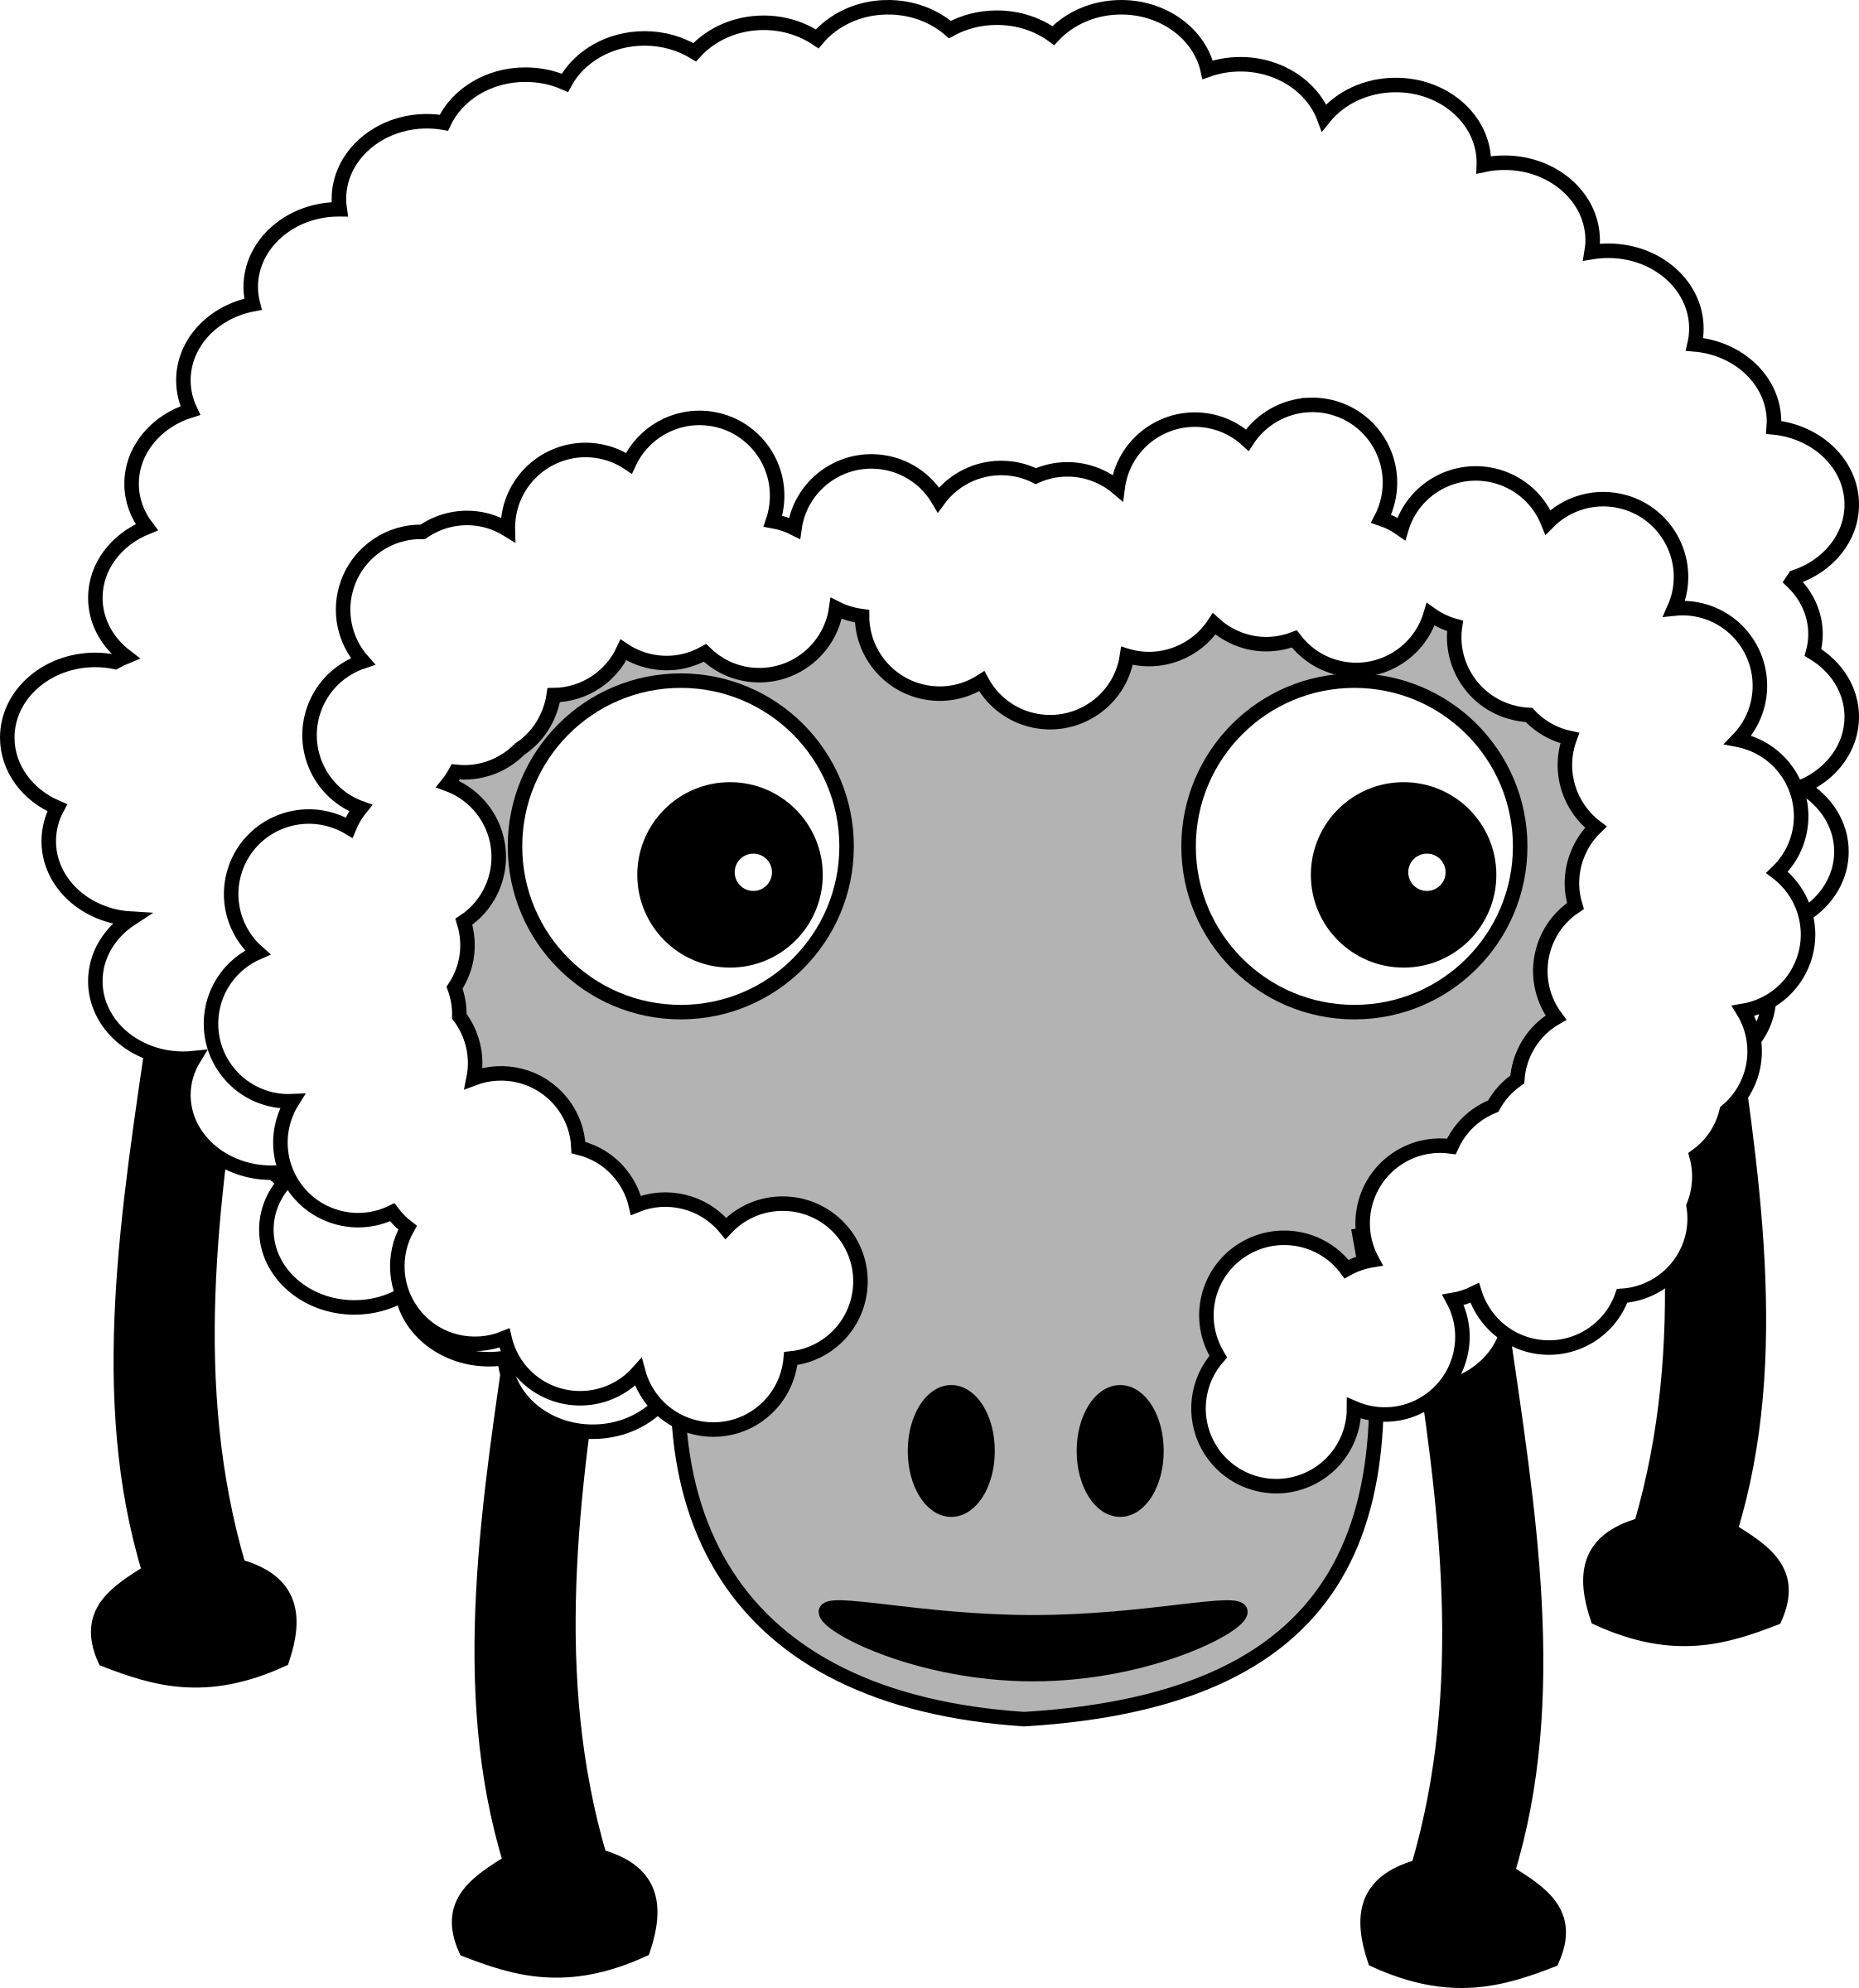 Sheep002 by TomBrough